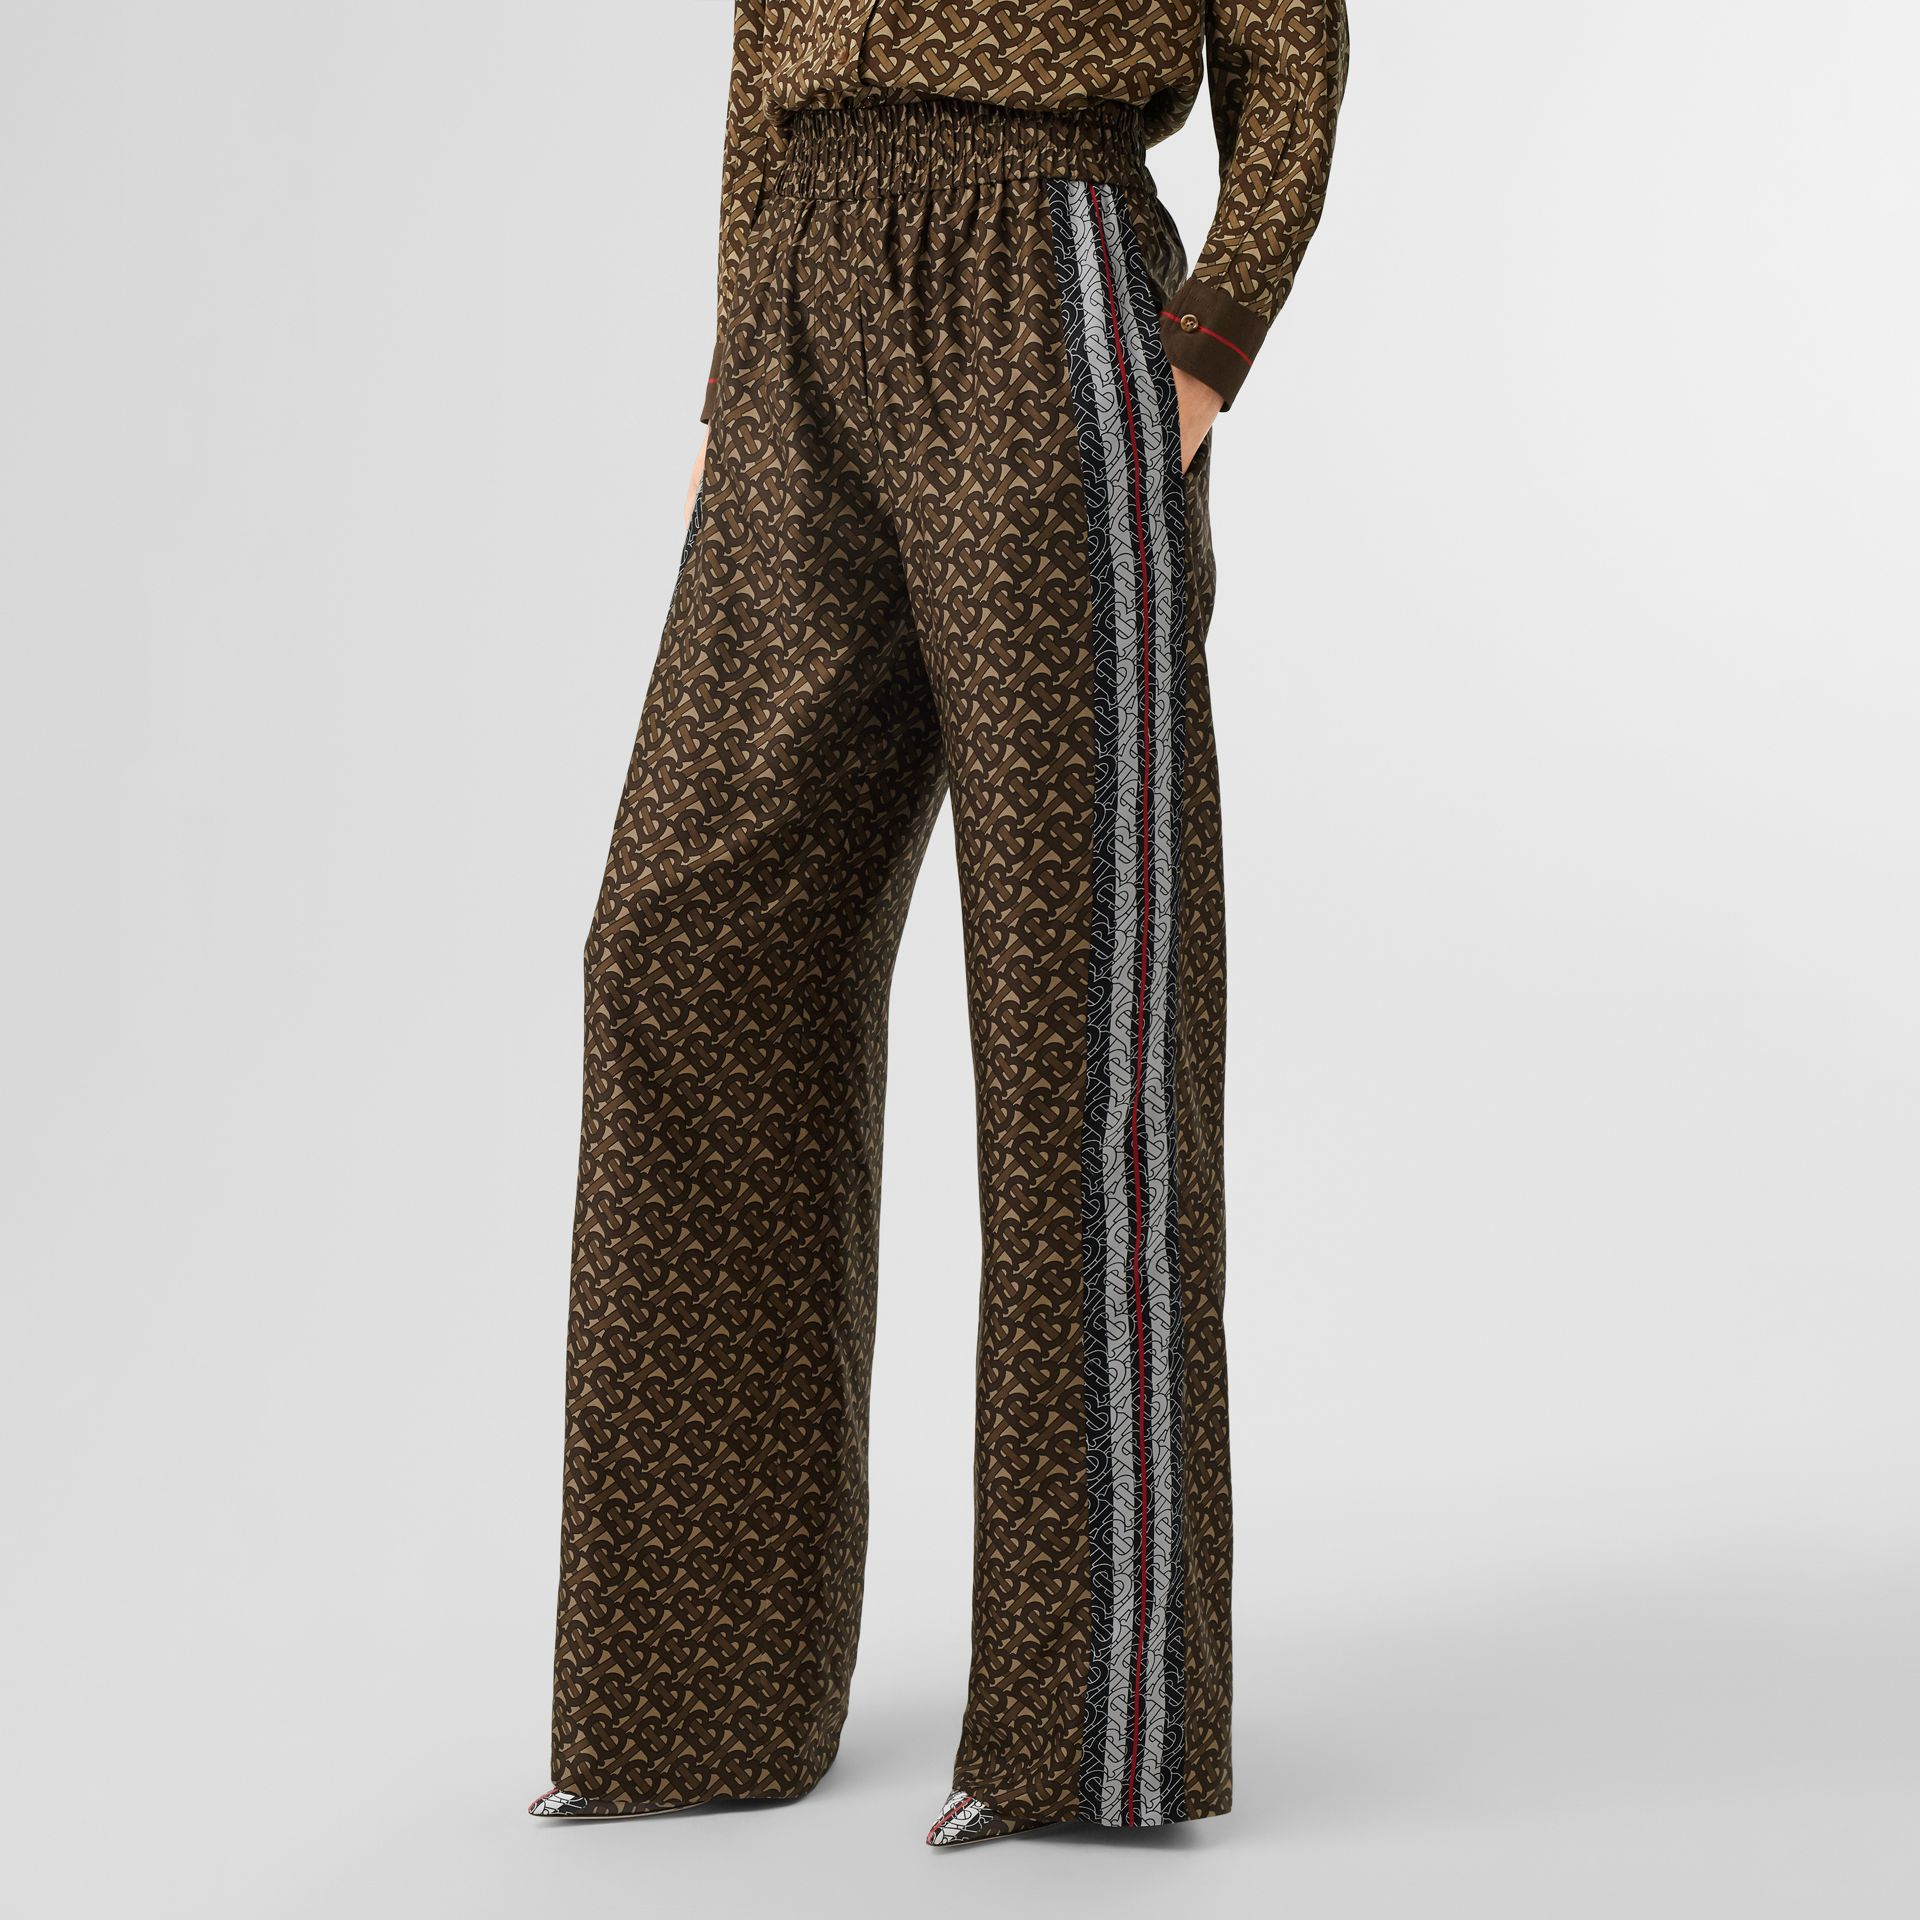 Monogram Stripe Print Silk Trousers in Bridle Brown - Women | Burberry - gallery image 2